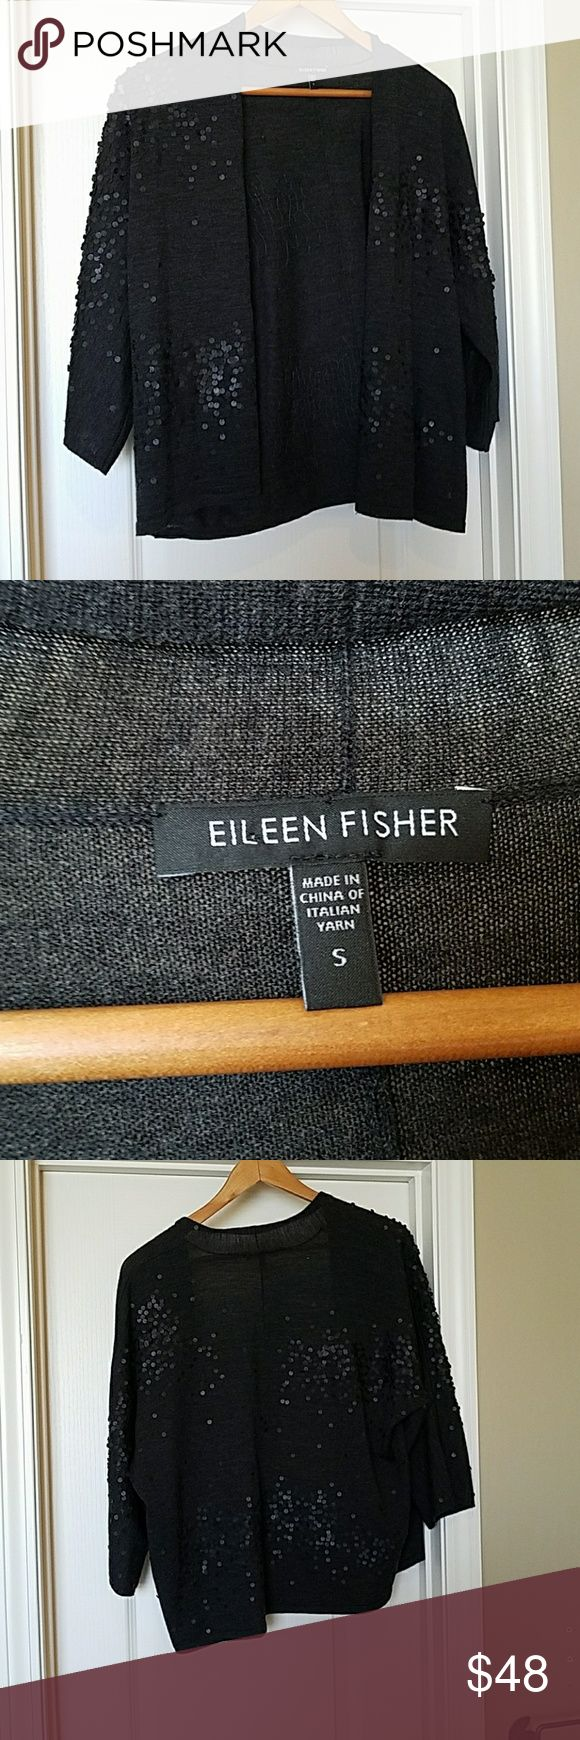 Eileen Fisher Merino Wool Sequin Open Cardigan Excellent used condition. Non smoking environment. Eileen Fisher Sweaters Cardigans